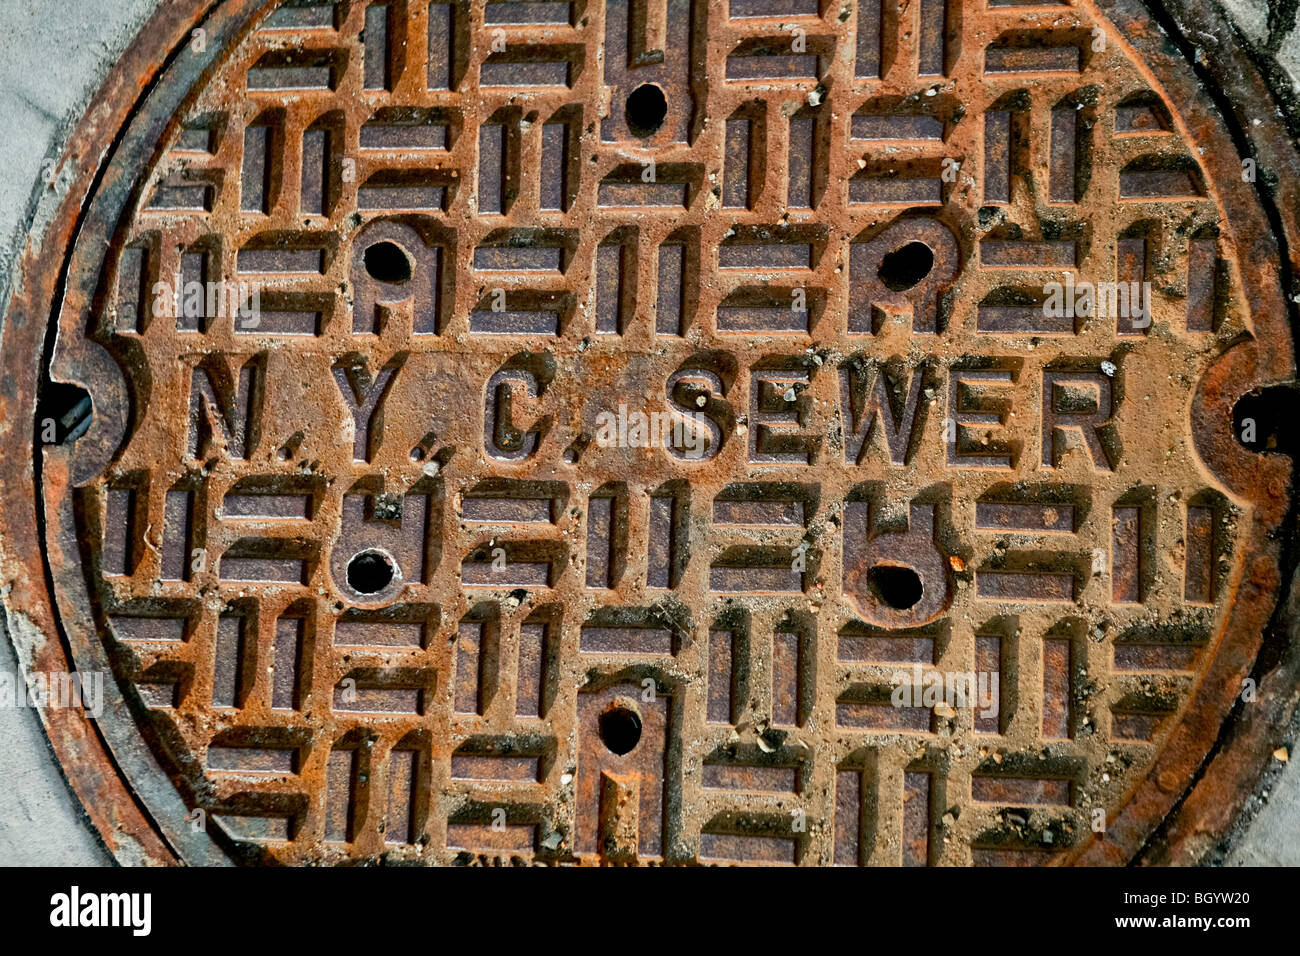 New York city sewer plate - Stock Image